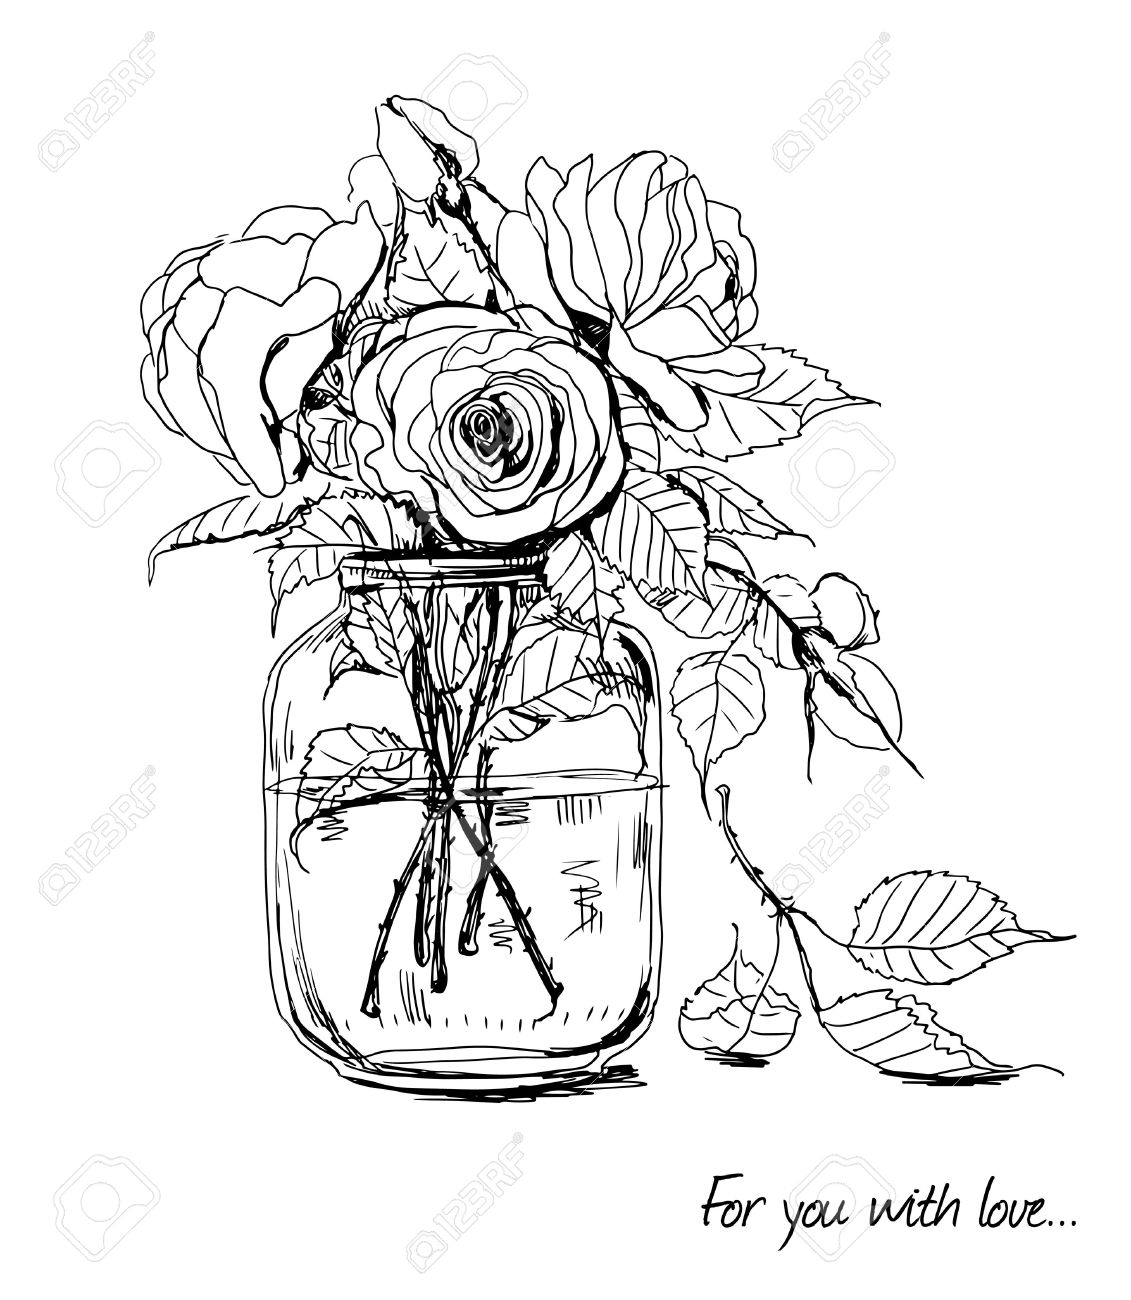 Drawn bouquet realistic Drawing Realistic Pencil Images Drawing